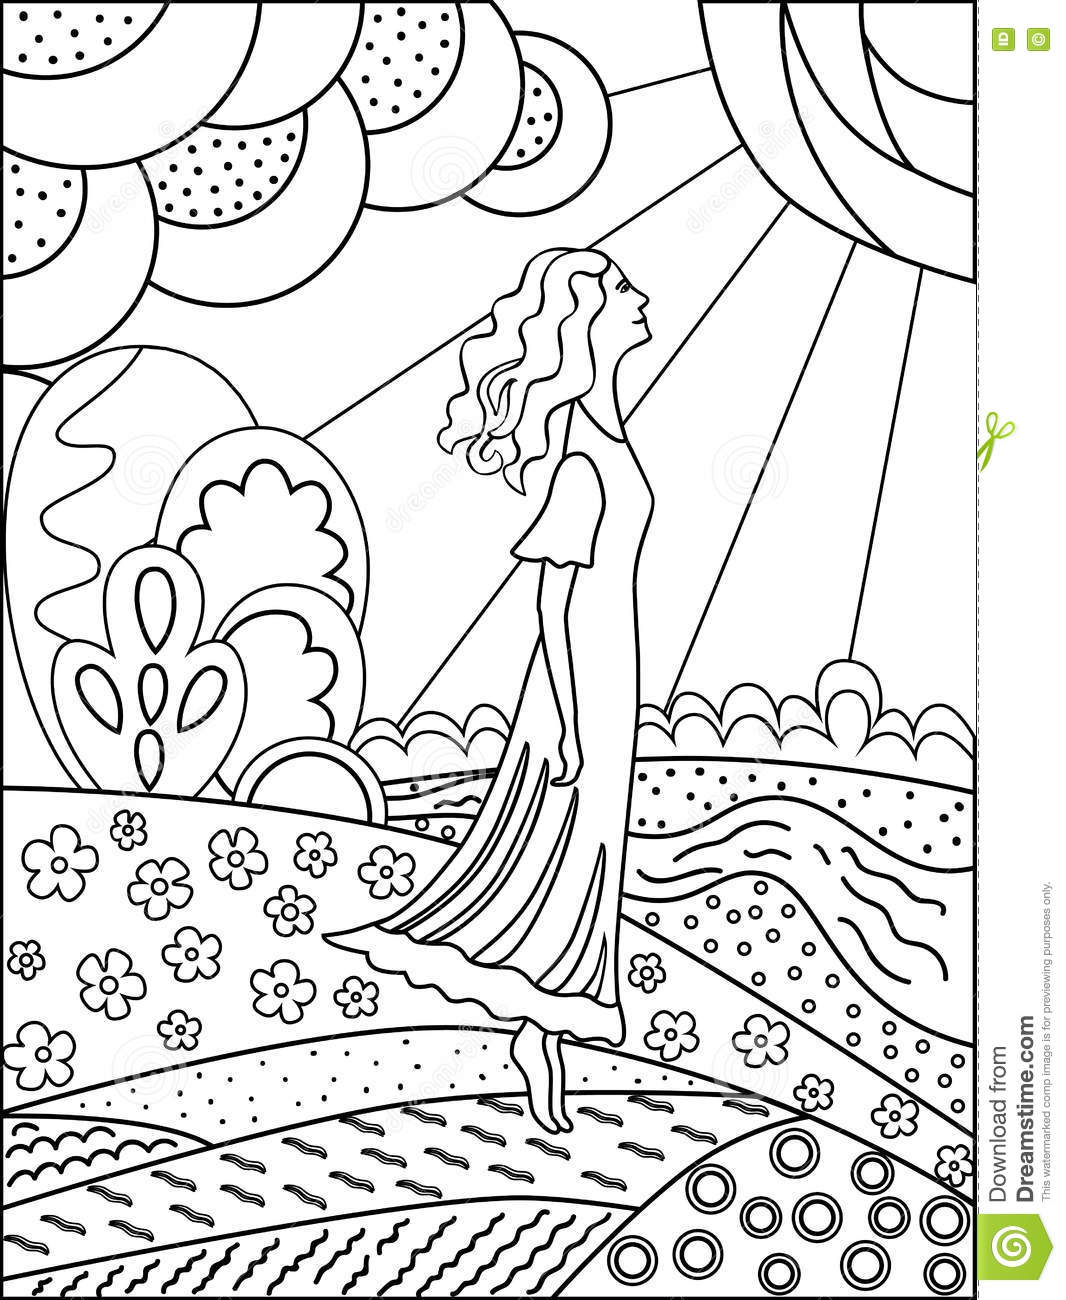 1066x1300 Simple Nature Drawings In Out Line Outline Drawing Of Nature